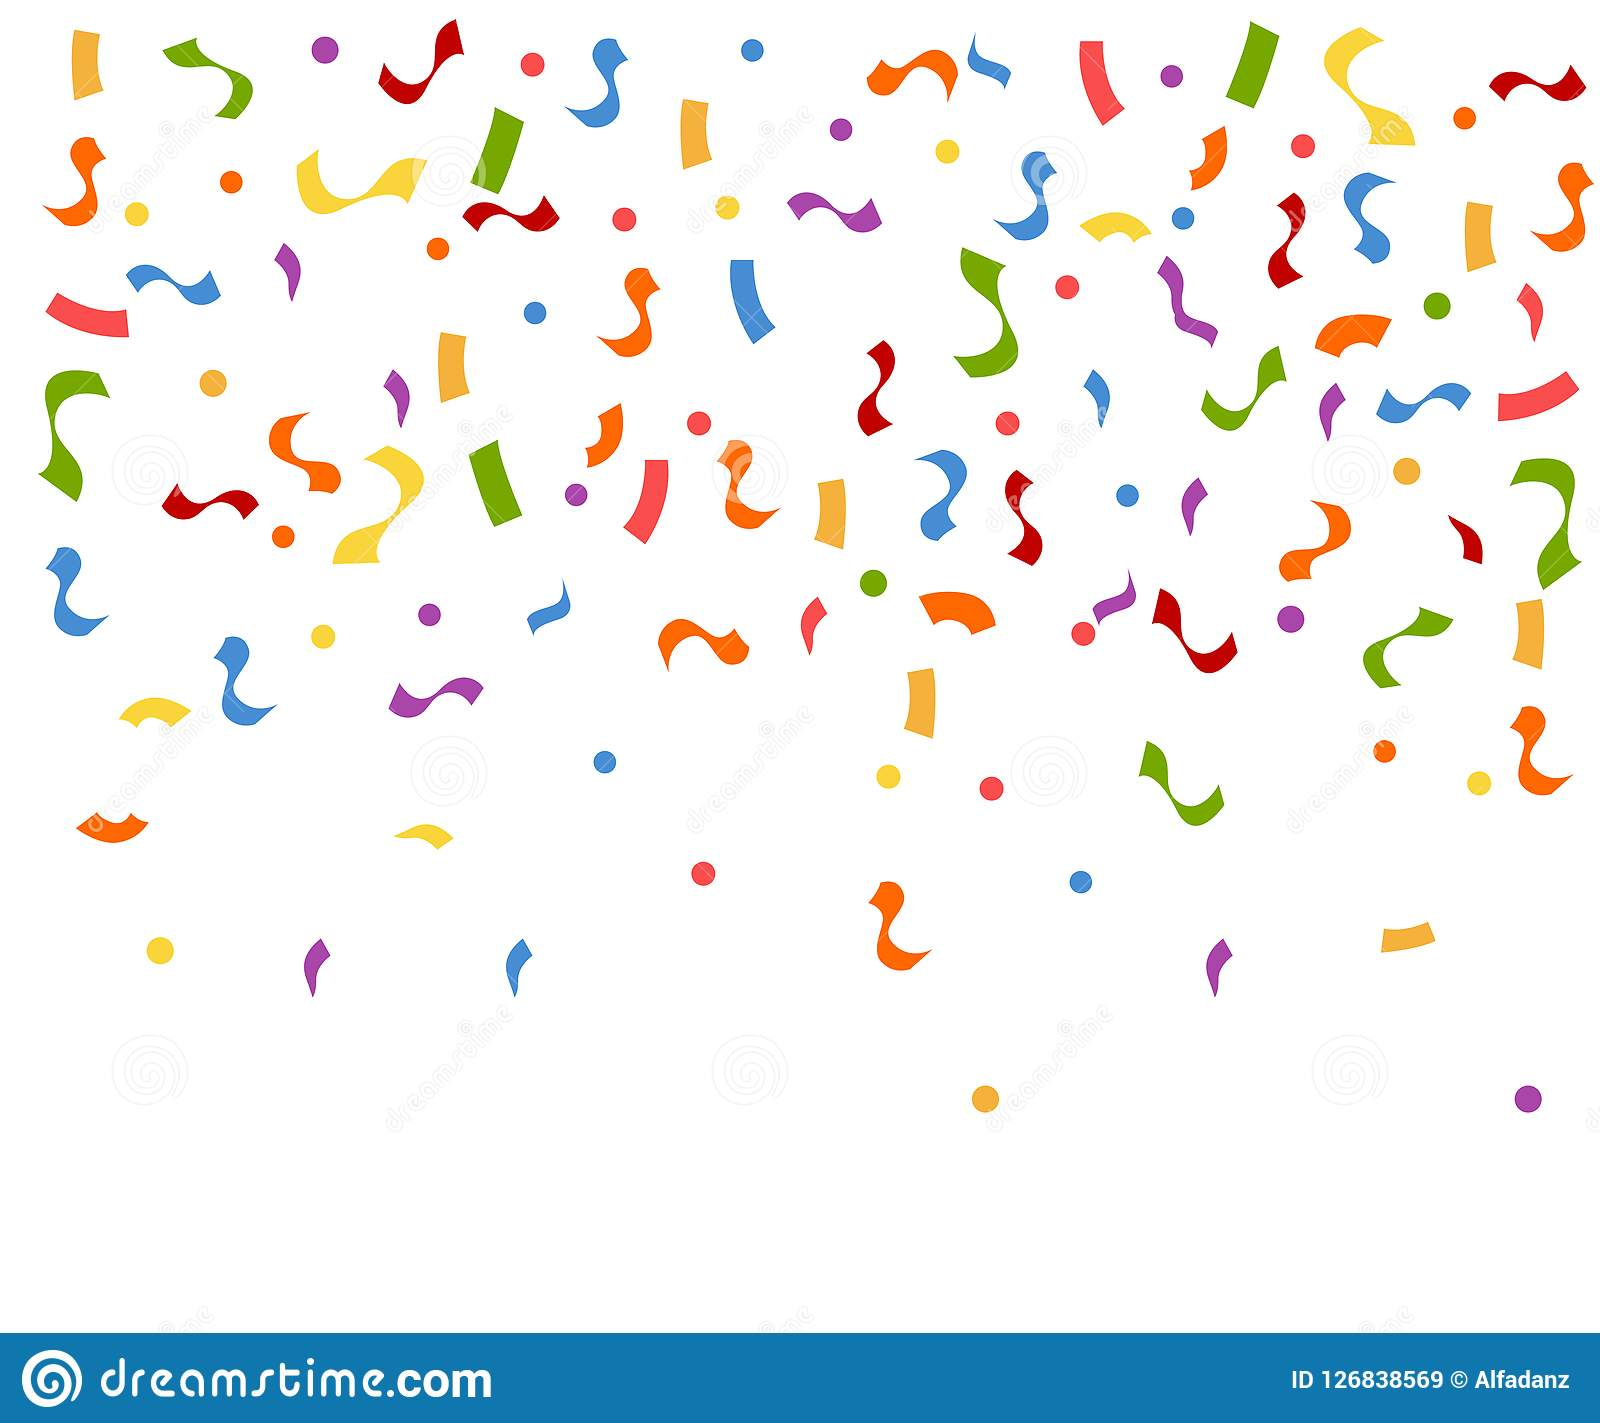 Abstract colorful explosion of confetti. Confetti falling down. Flat vector illustration on white background